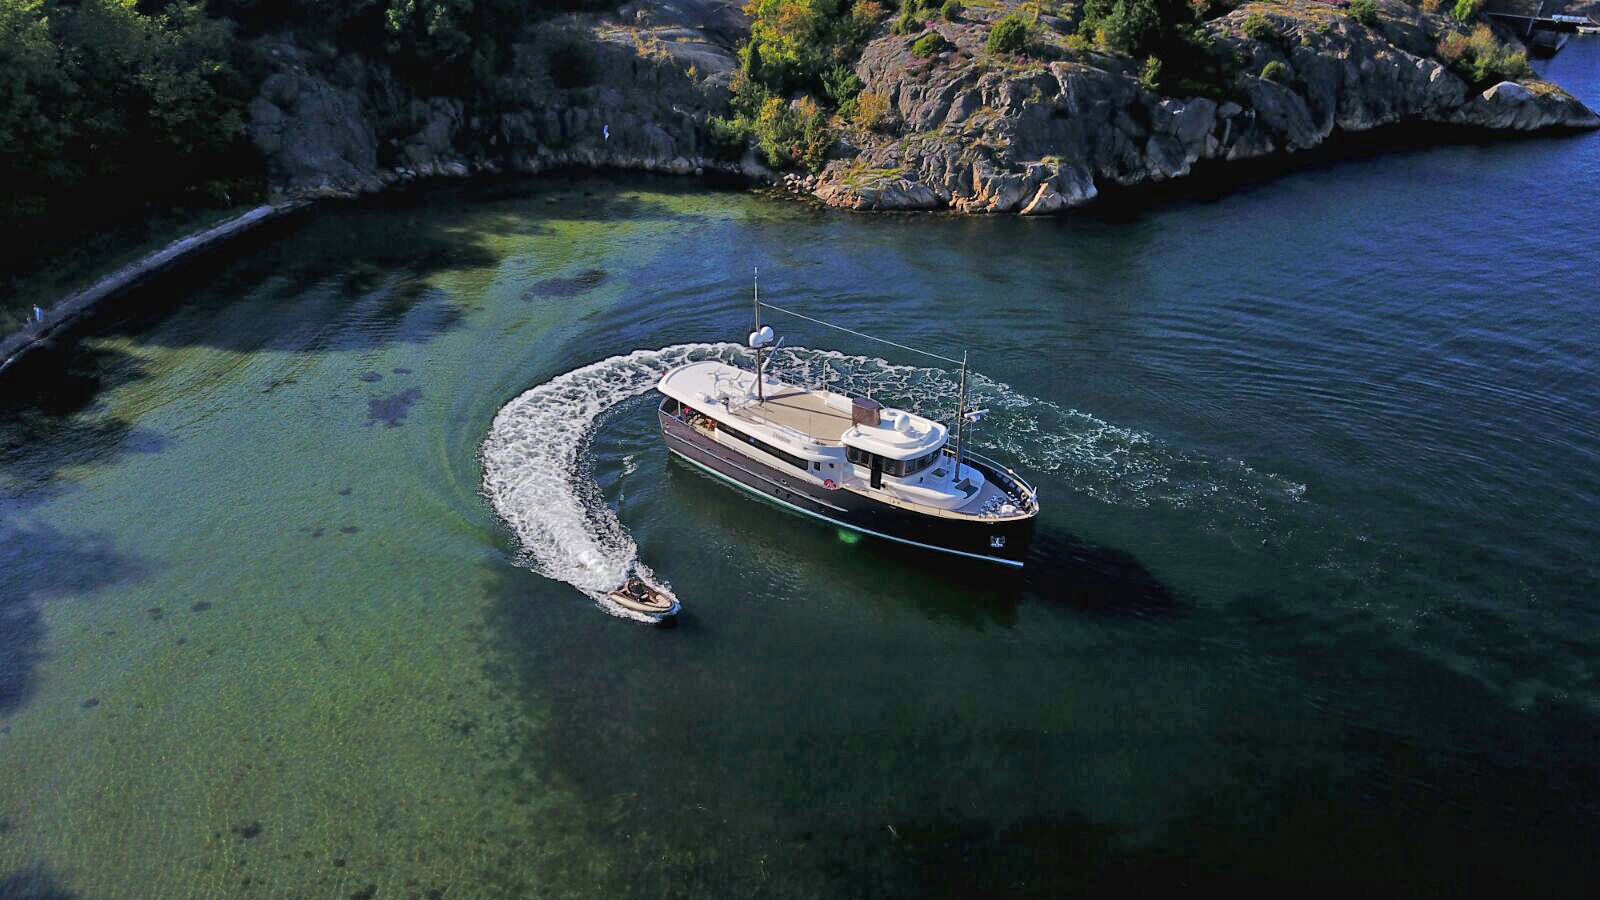 livingstone-by-hartman-yachts-is-one-of-the-best-modern-classic-yachts-in-the-world